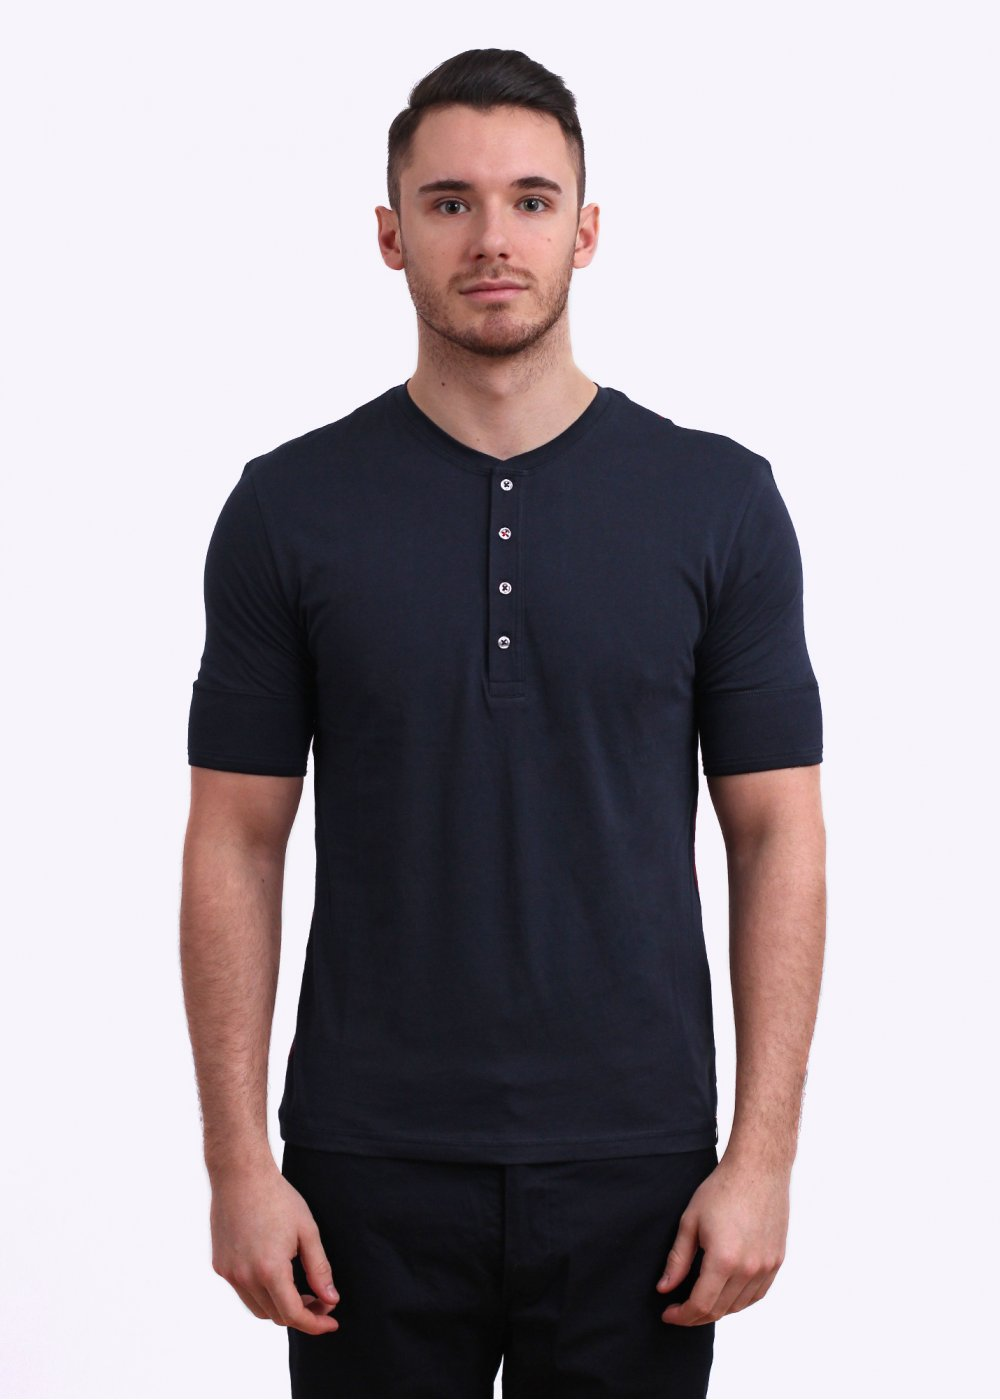 Black t shirt navy jeans - Henley T Shirt Navy